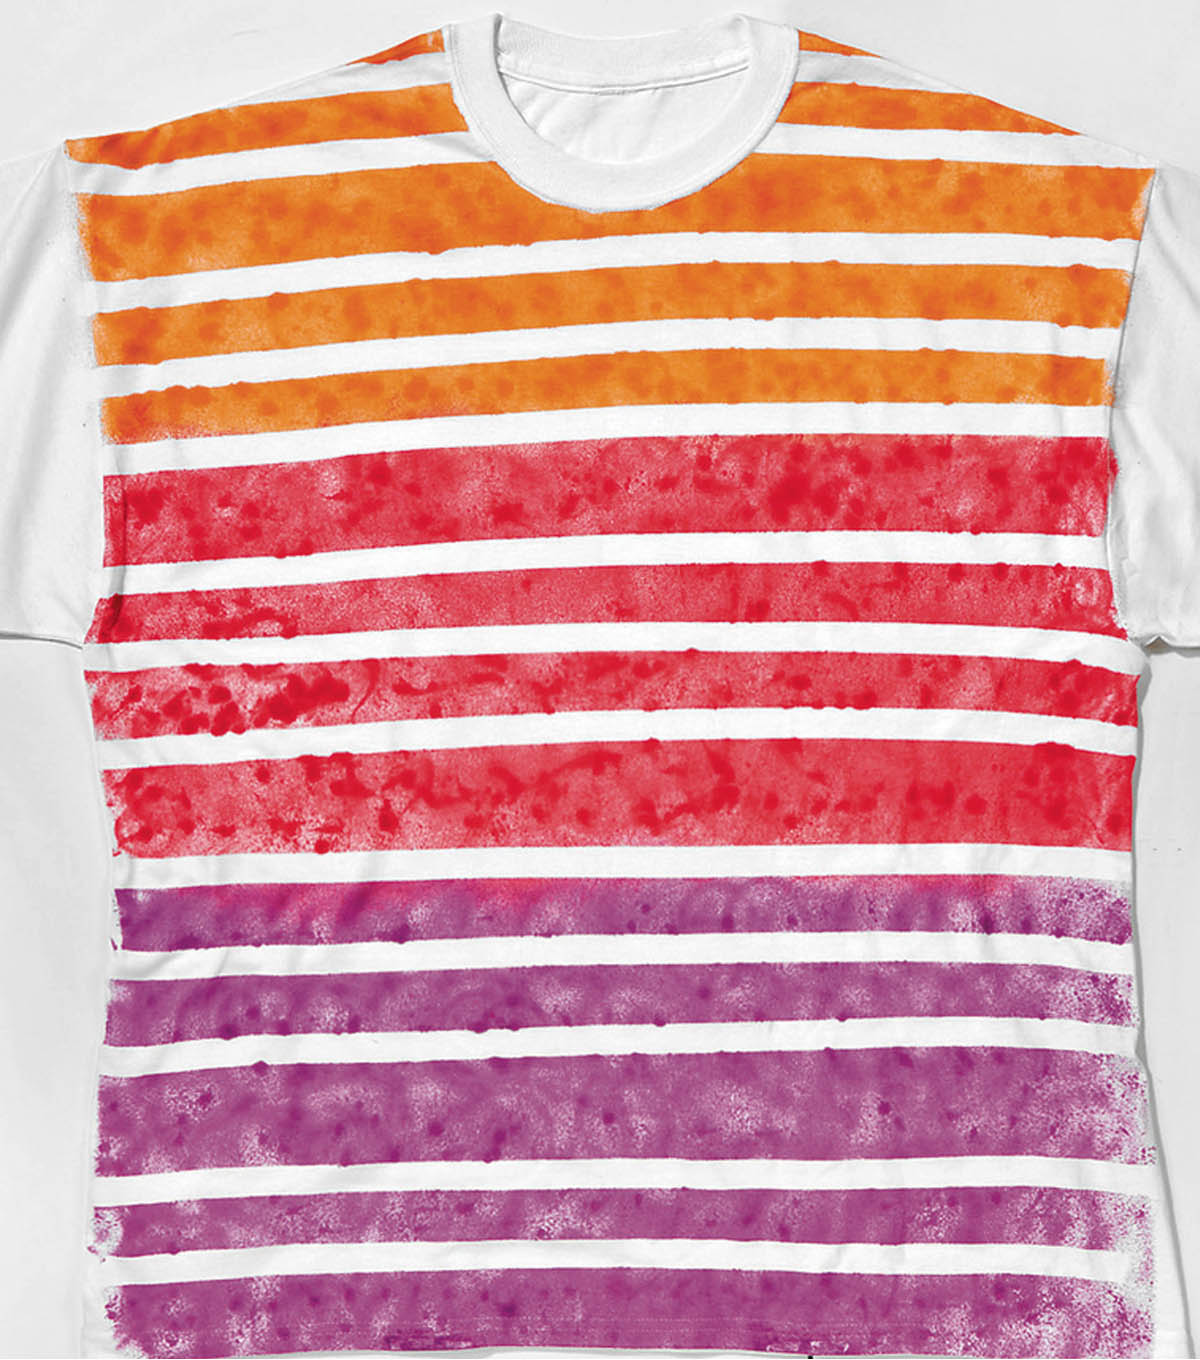 Painted Striped T-Shirt